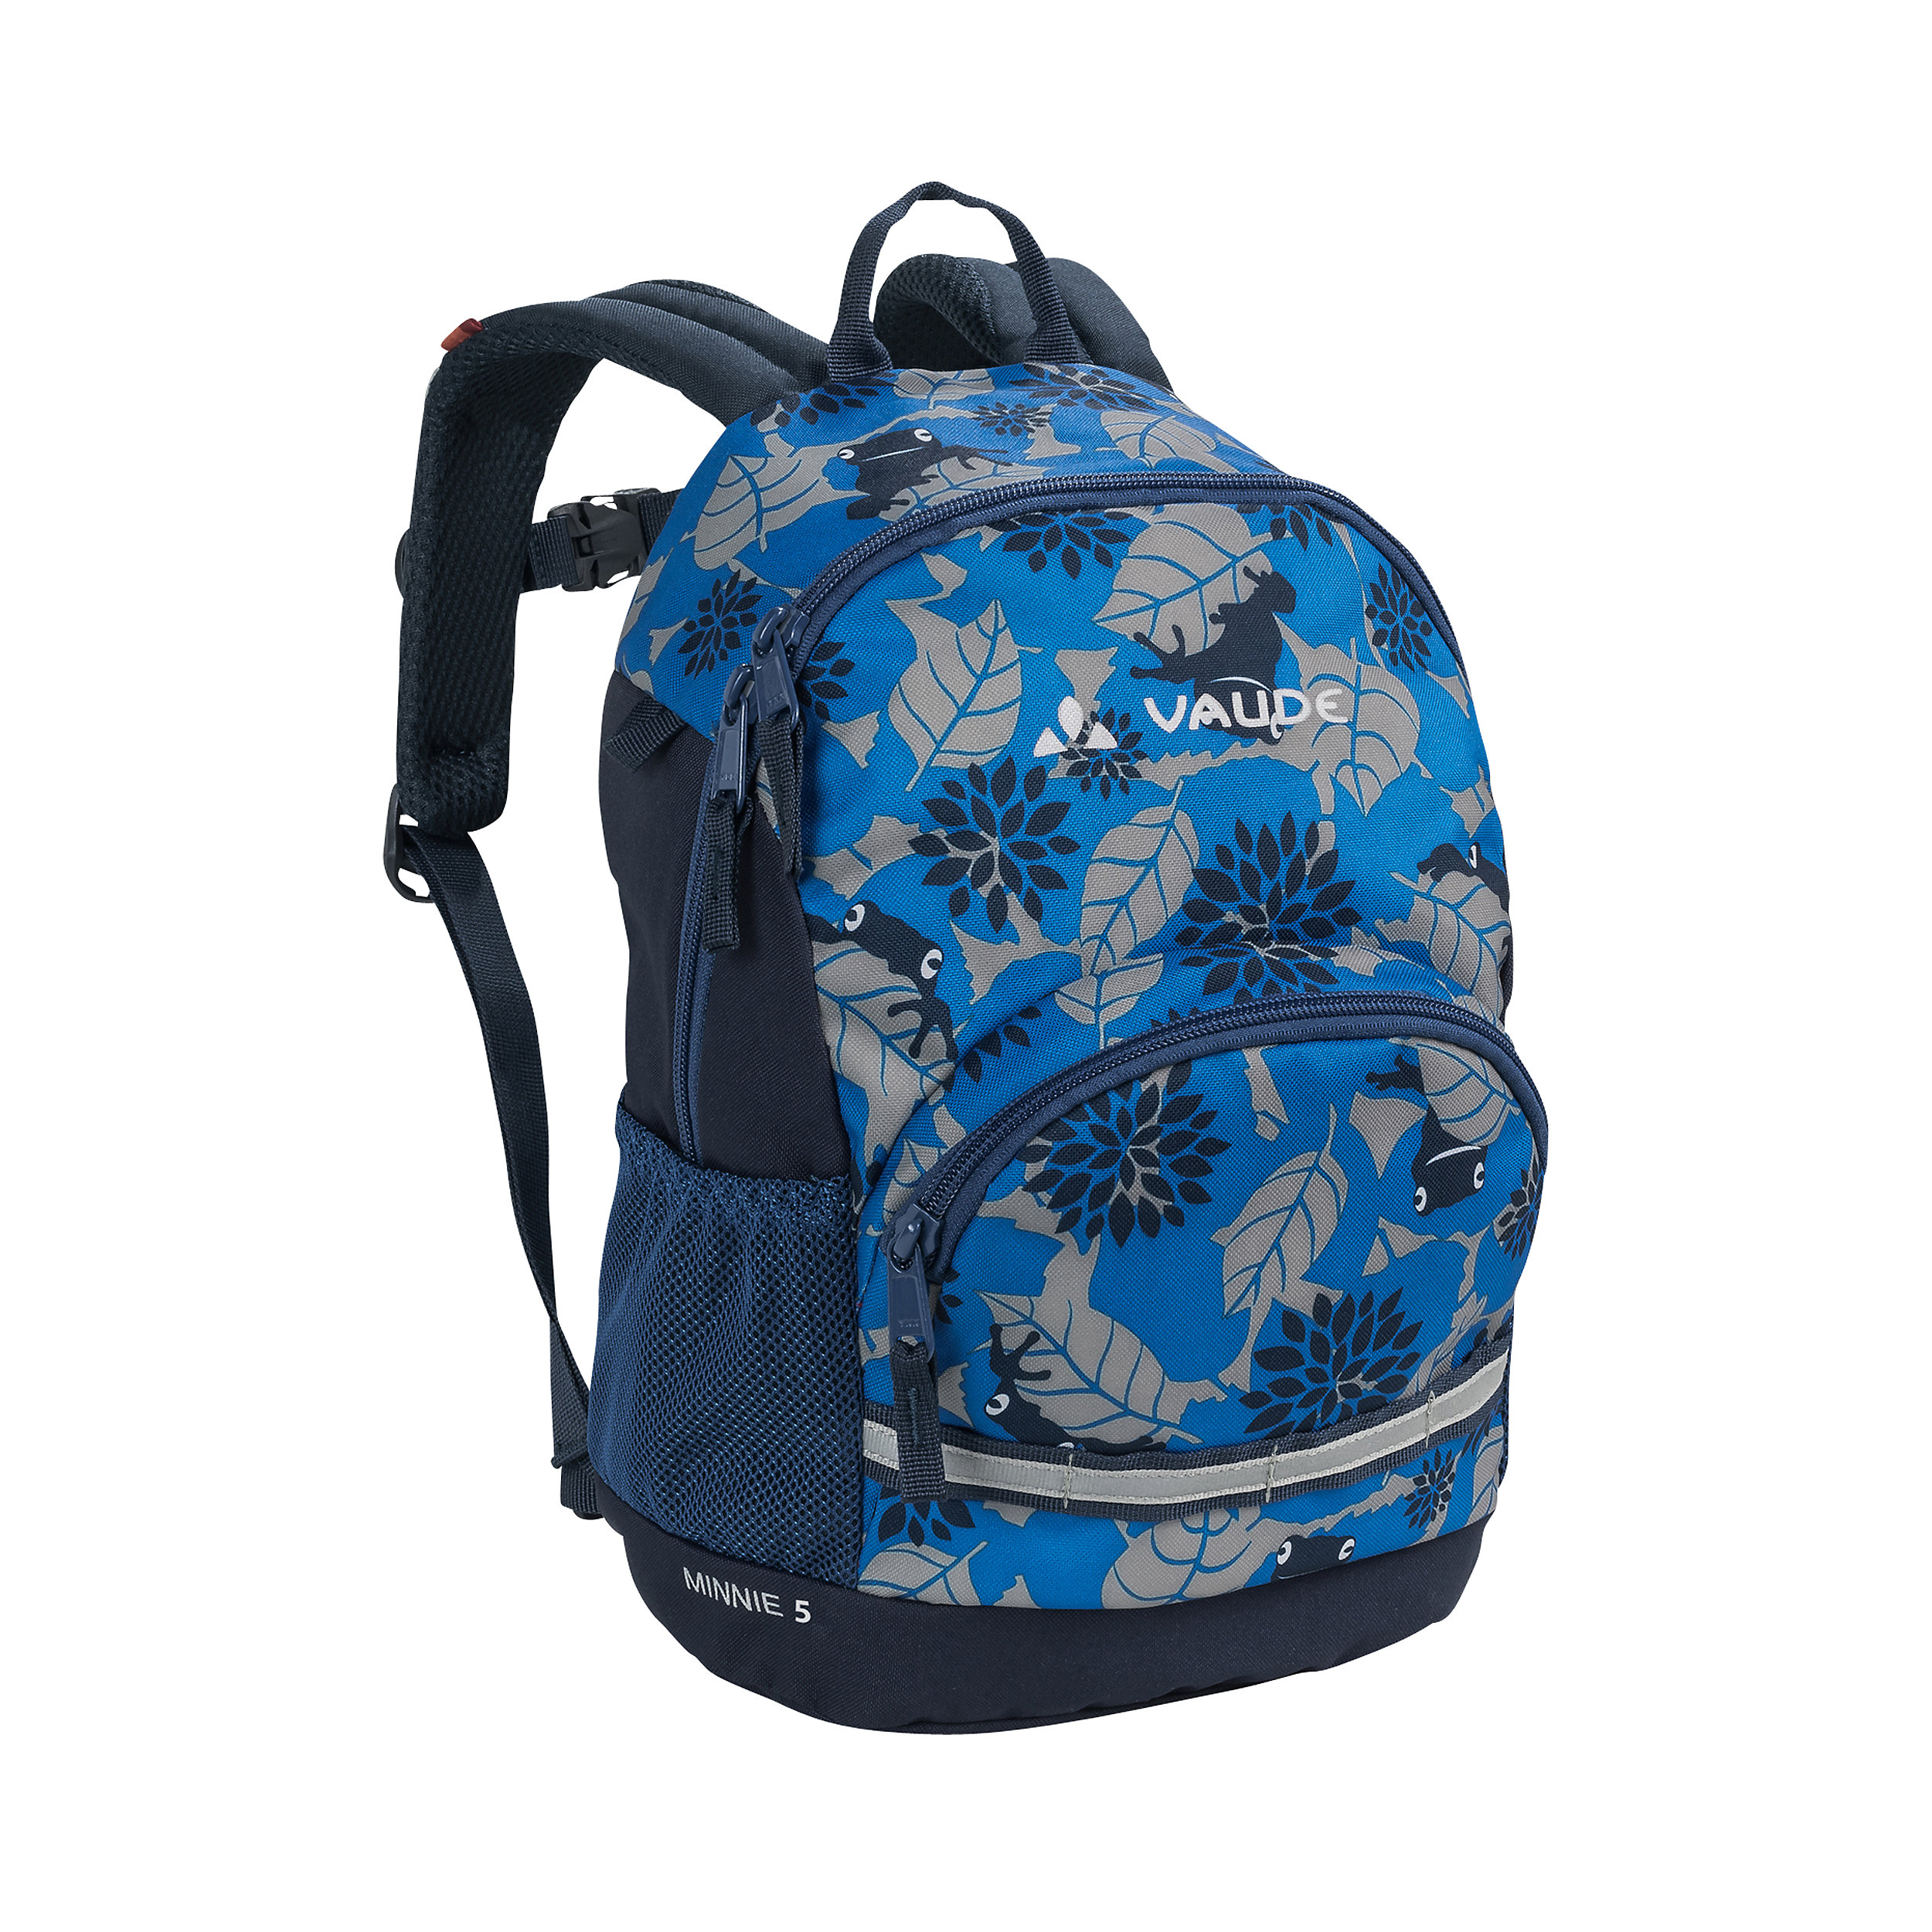 Children's Backpack Minnie 5 Family